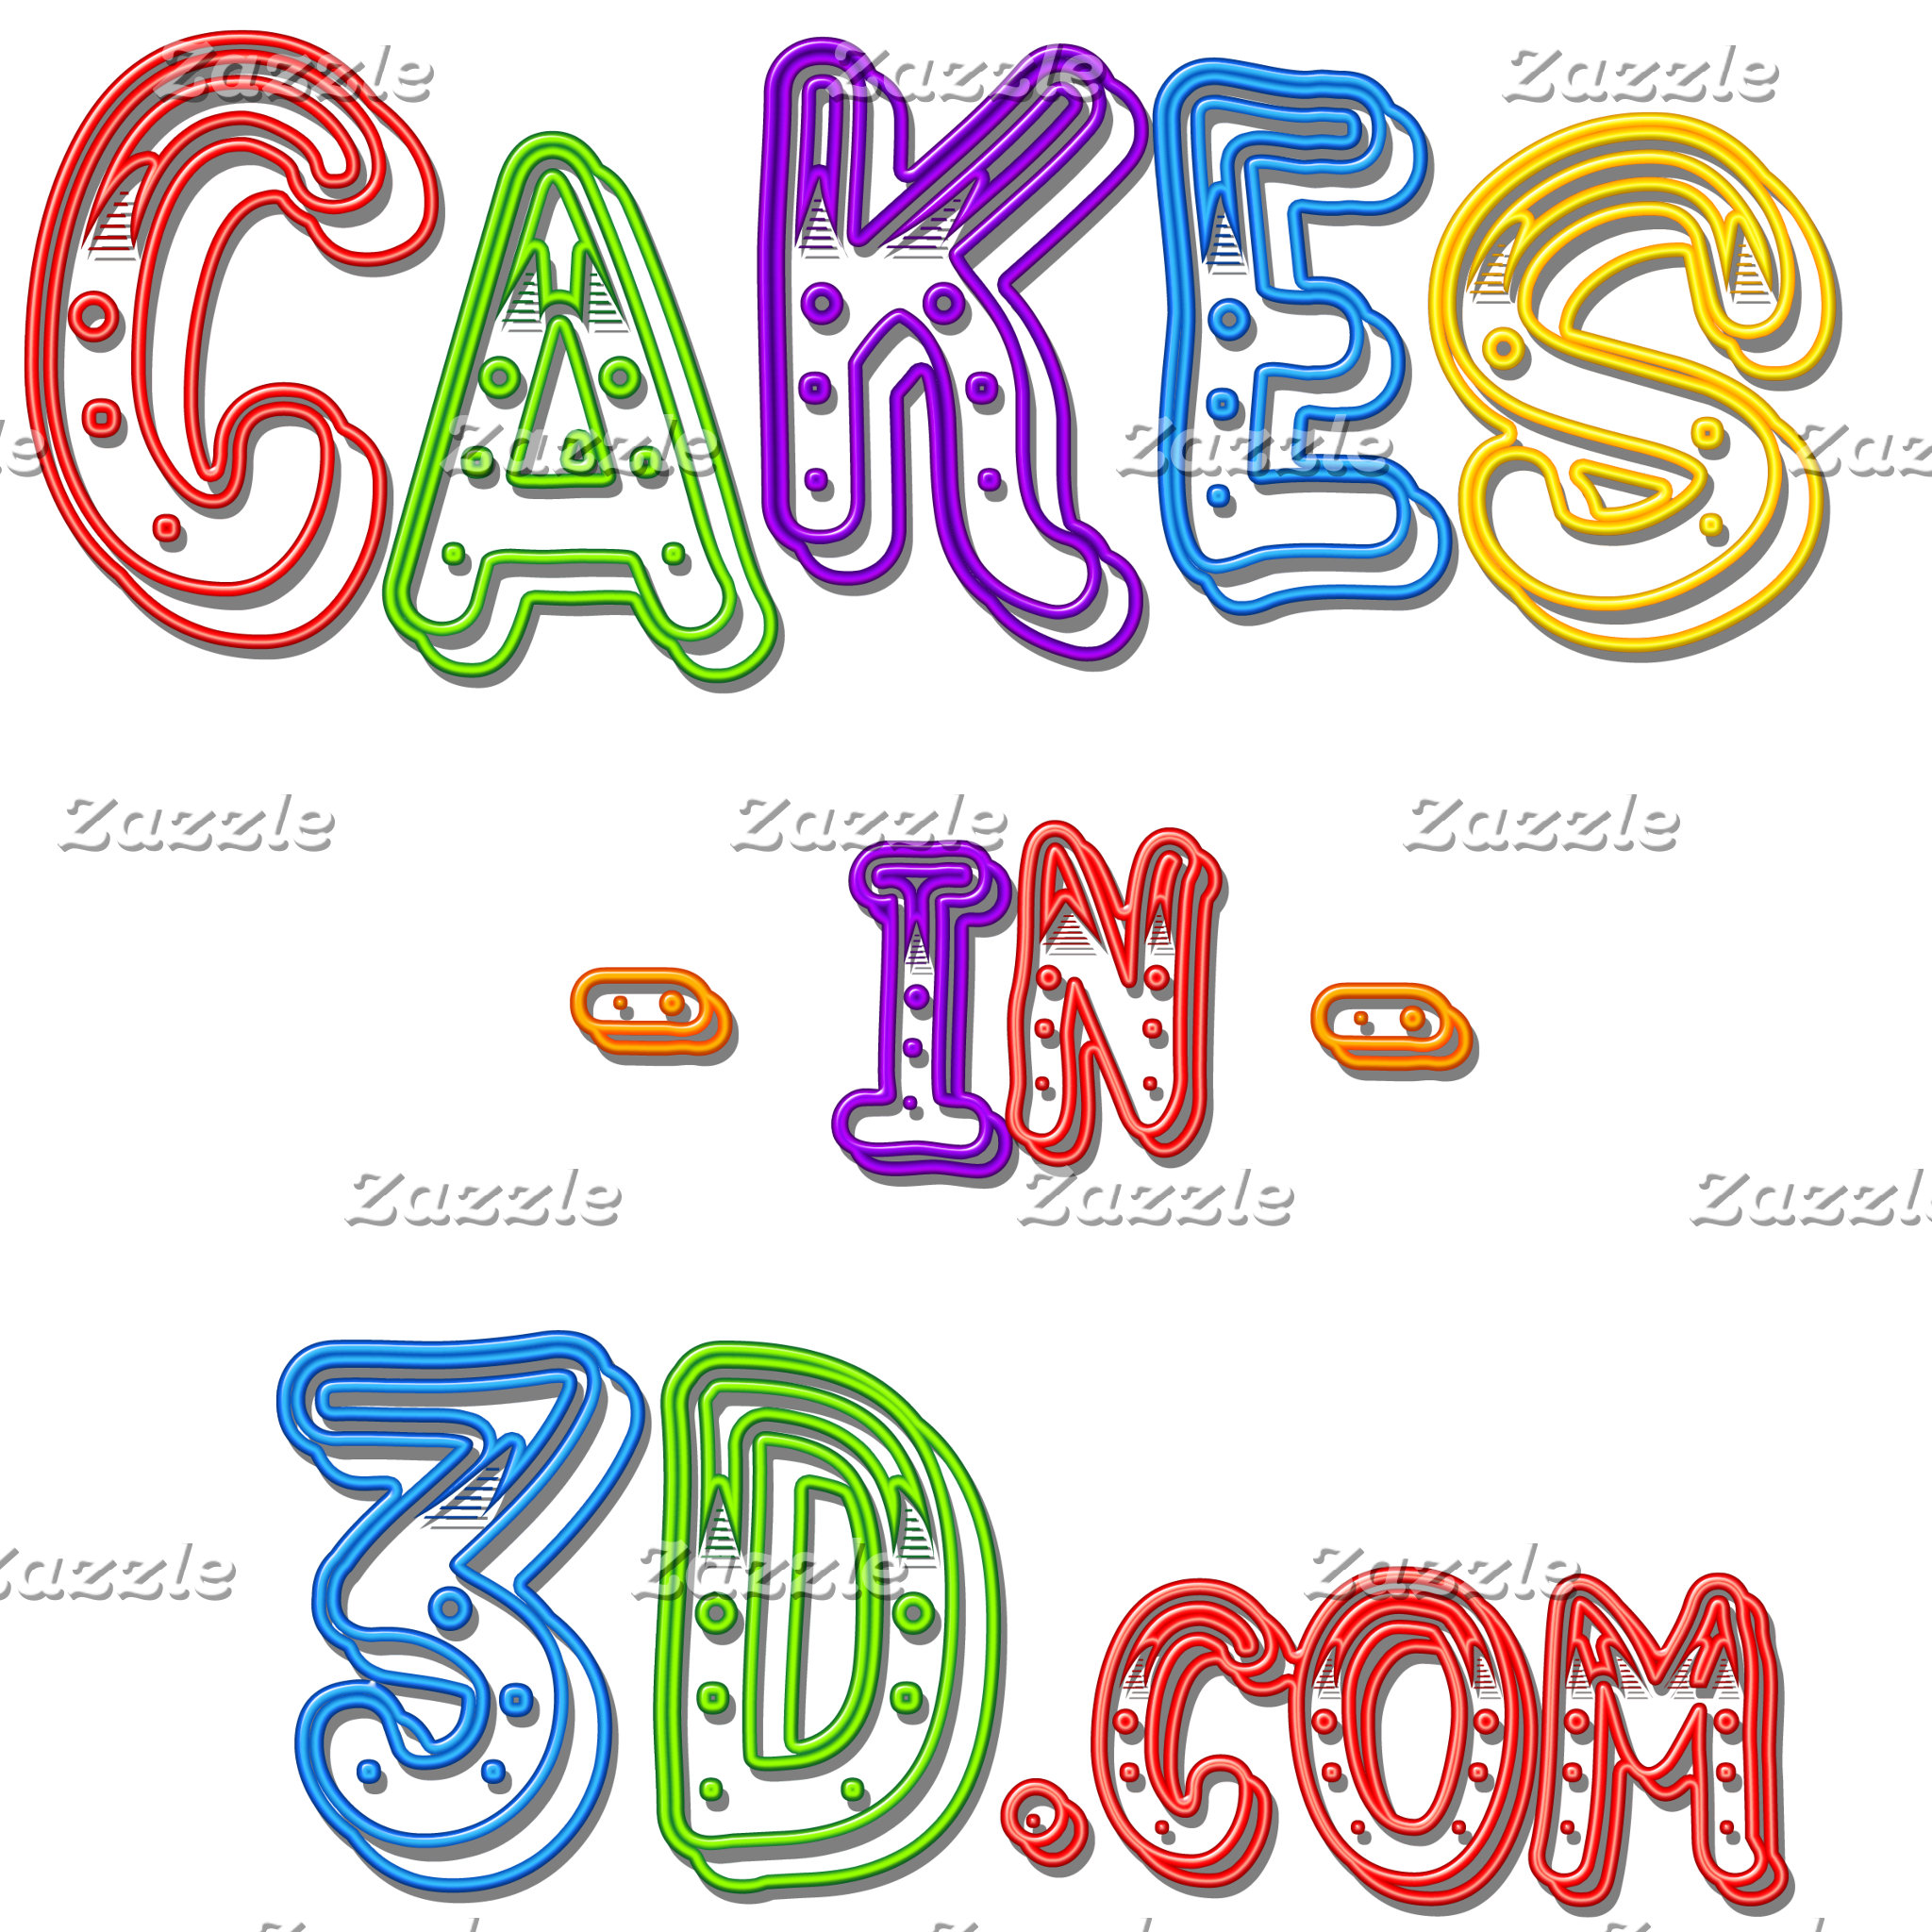 The Cakes in 3D Logo